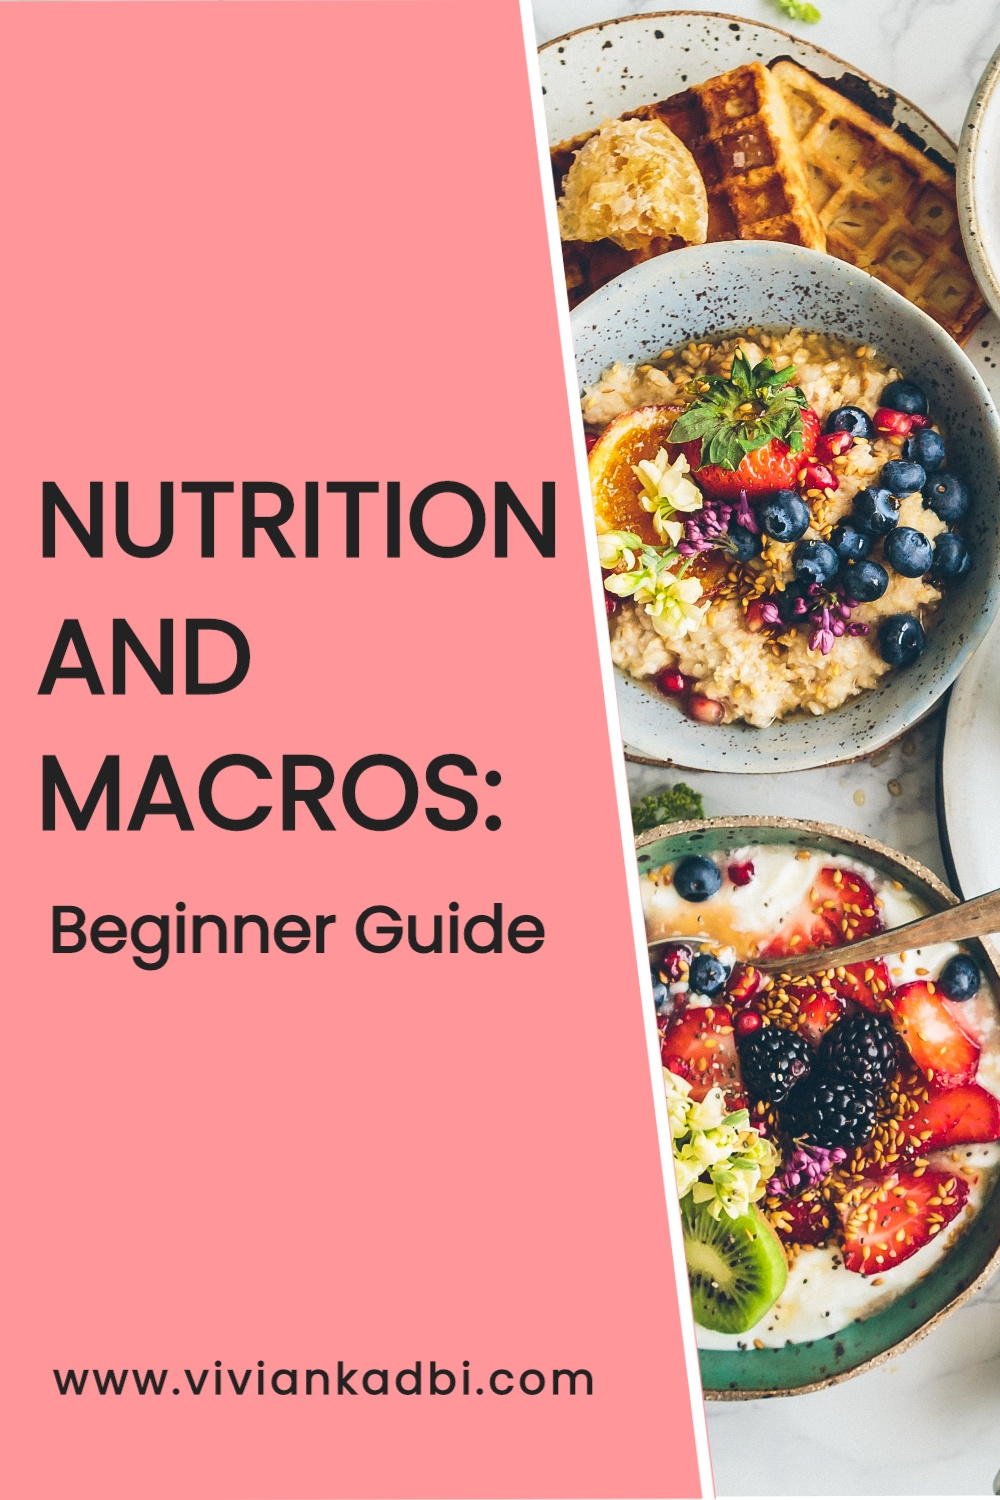 NUTRITION-AND-MACROS_-Beginner-Guide